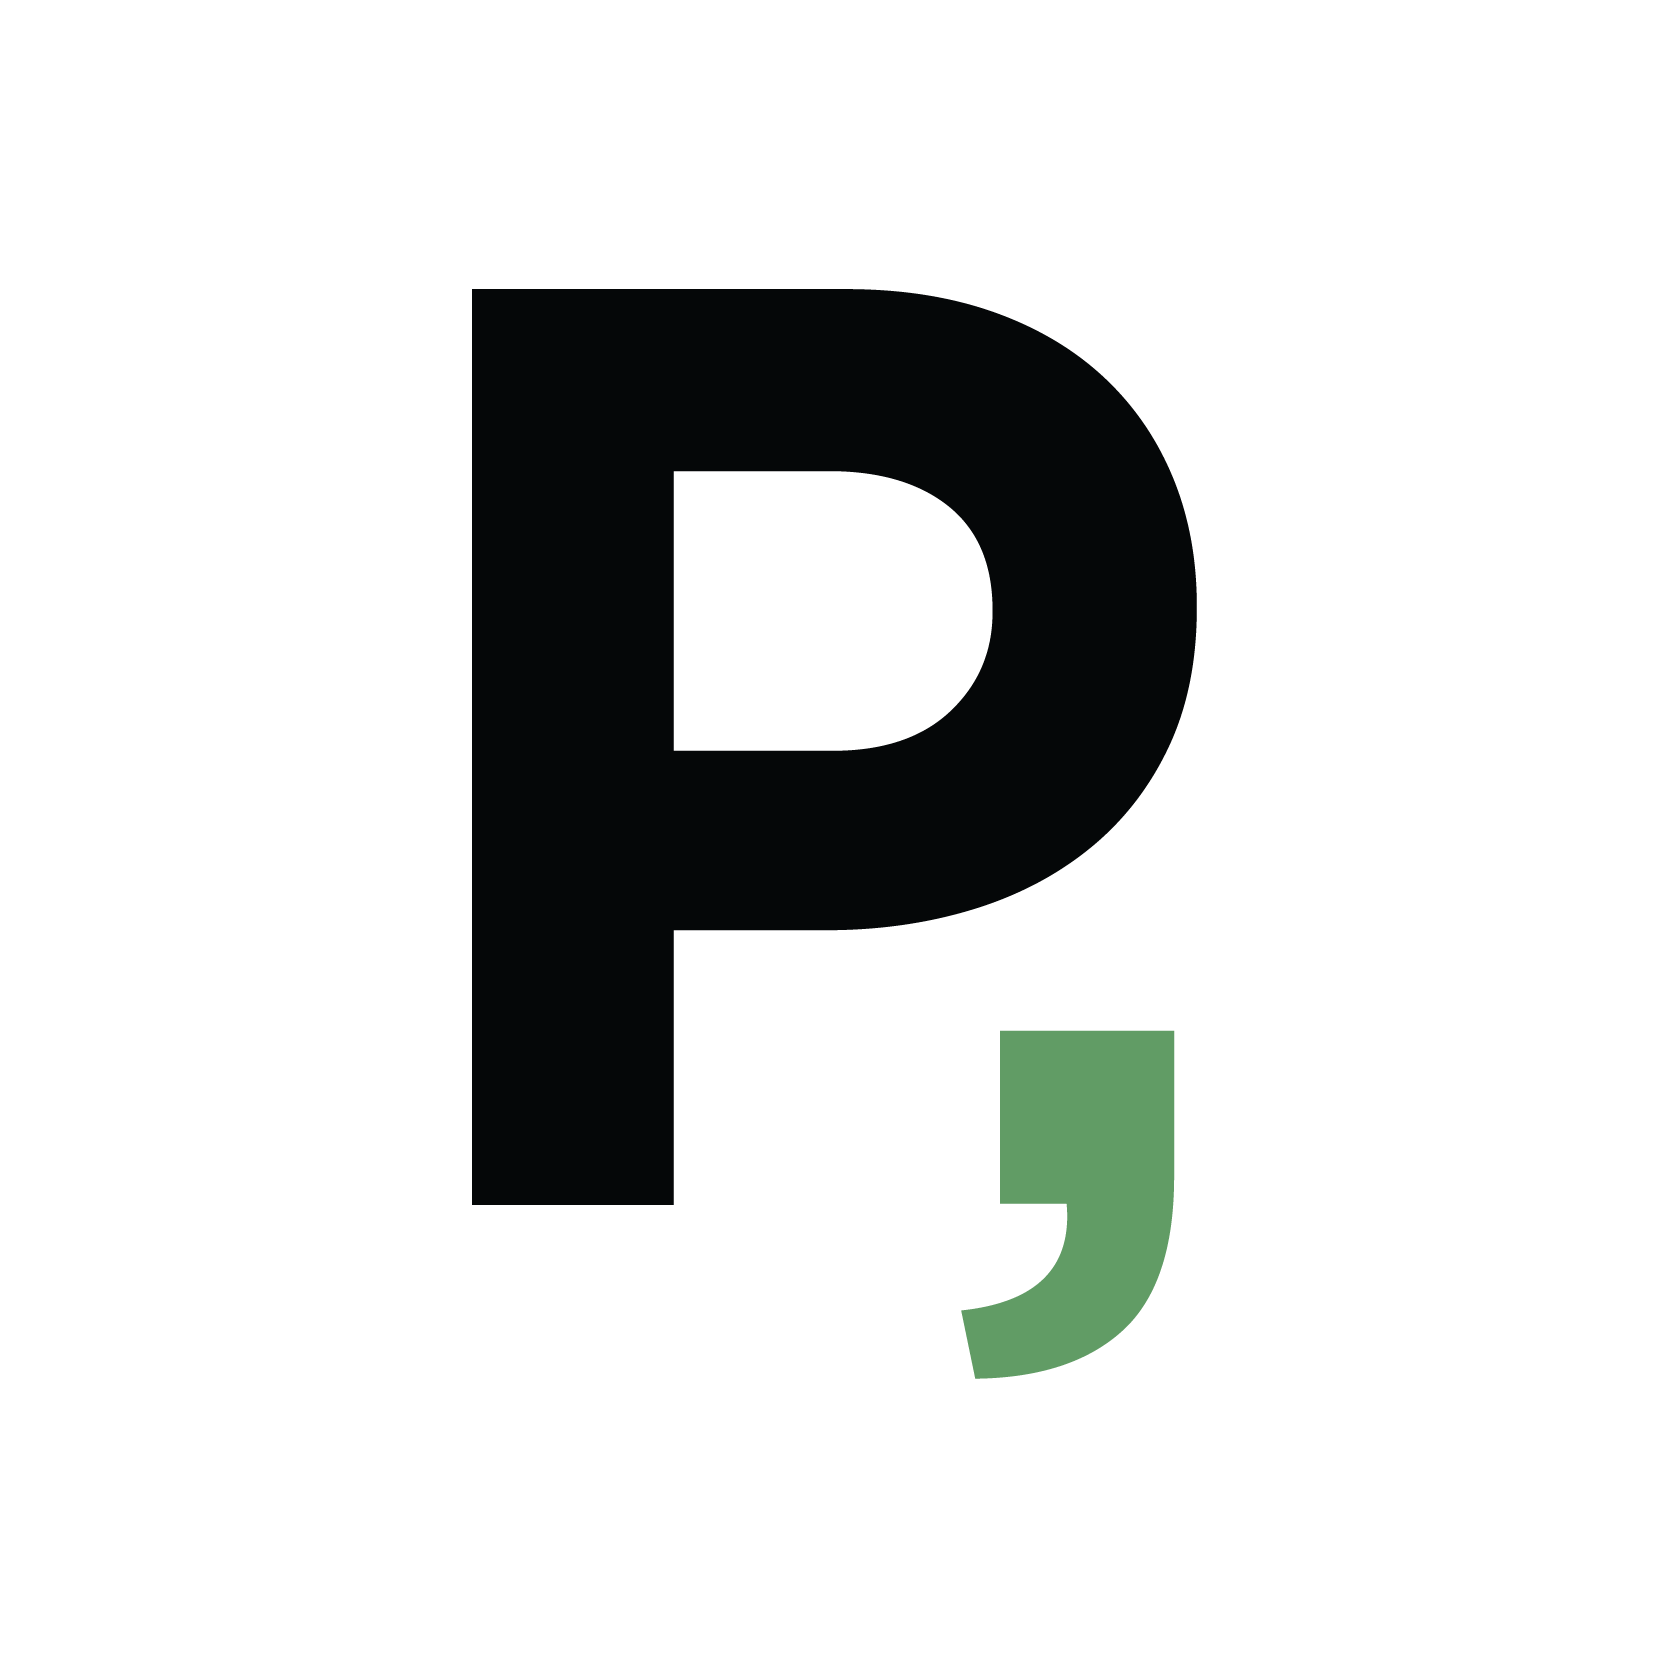 "The character ""P"" followed by a comma"